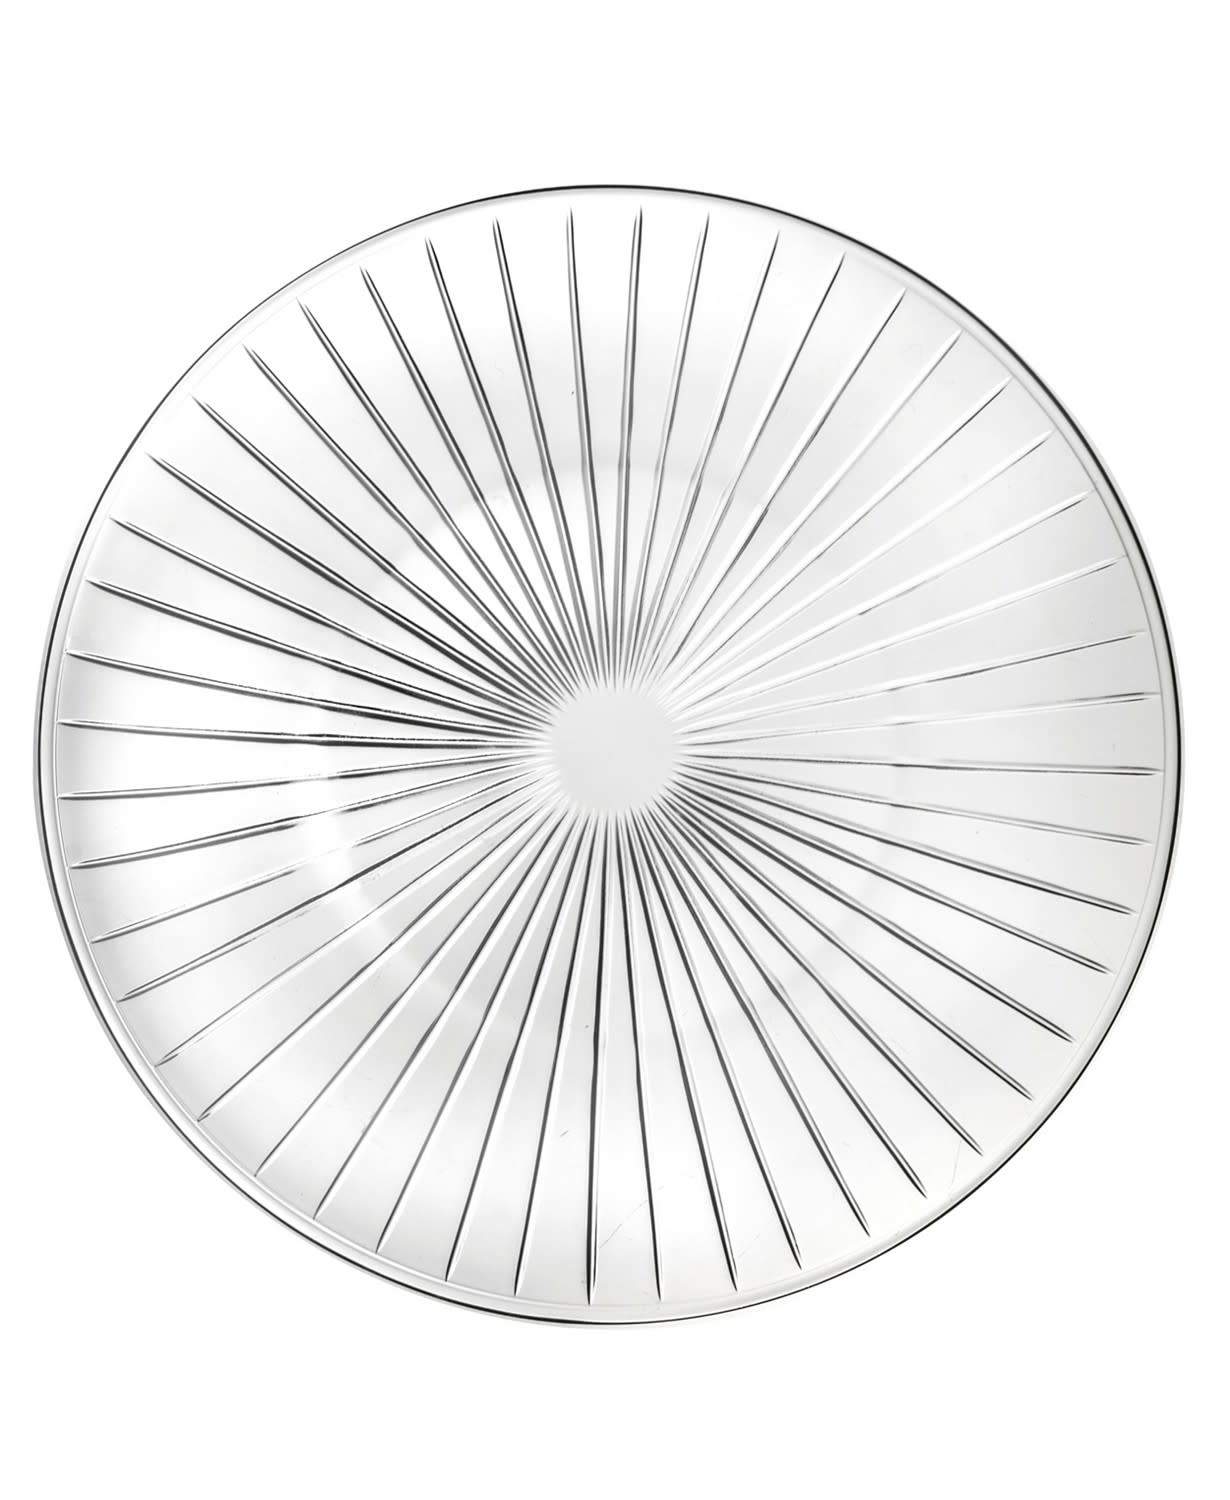 "Sunbeam Dinner Plate 10"" set of 4"